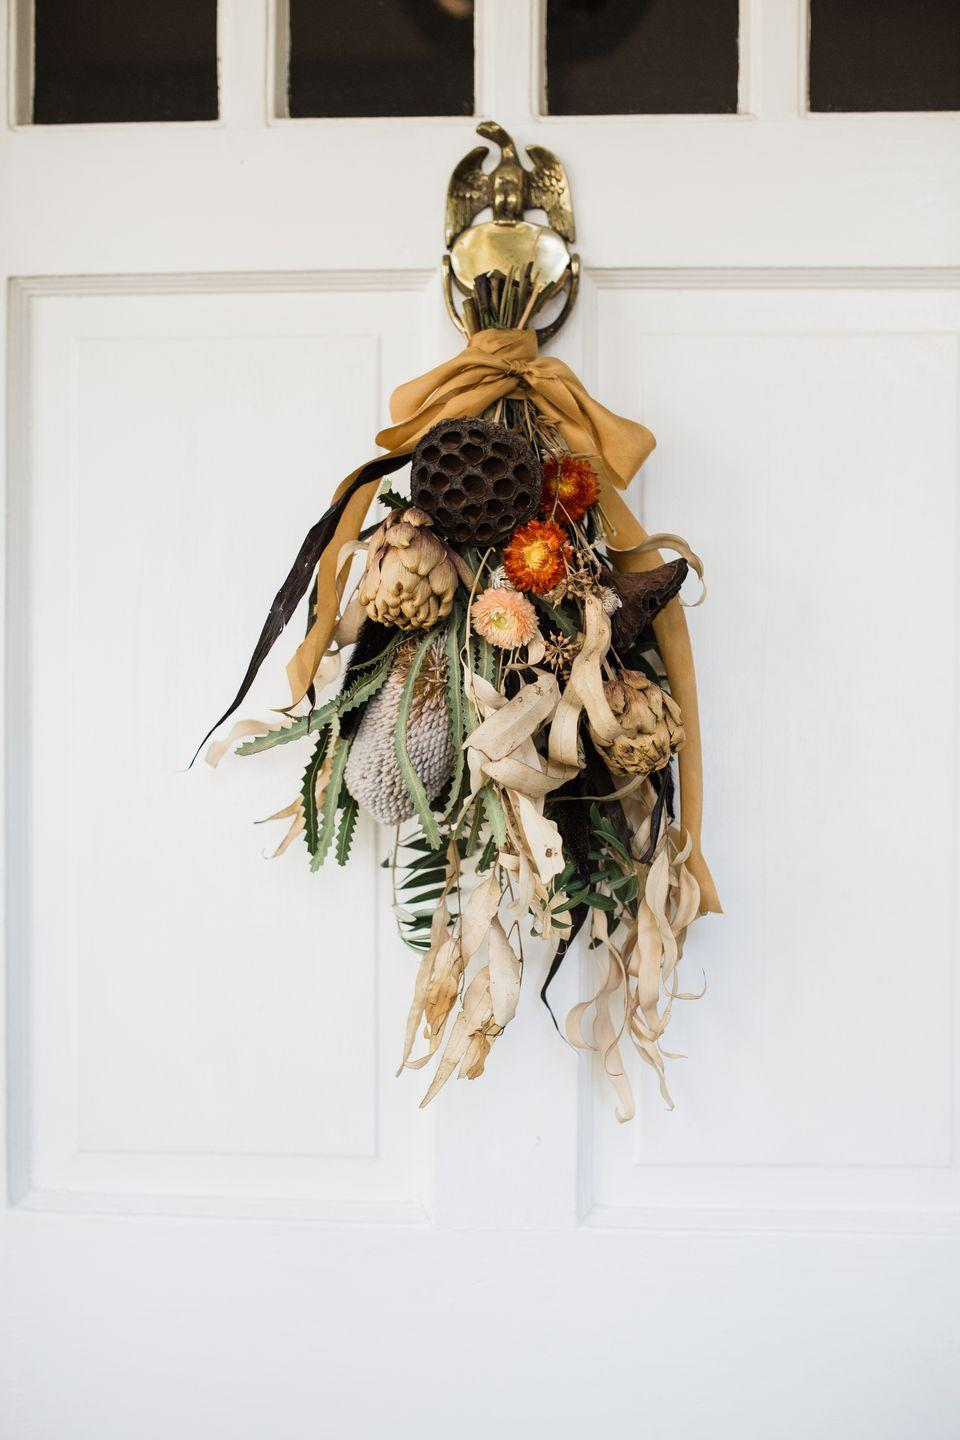 "<p>Save your wreaths for for the winter holidays; this smaller, <a href=""https://cheetahisthenewblack.com/living/lifestyle/diy-seasonal-door-swag/"" rel=""nofollow noopener"" target=""_blank"" data-ylk=""slk:seasonal door hanging"" class=""link rapid-noclick-resp"">seasonal door hanging</a> is ideal for Thanksgiving. Try using dried flowers or other greens you can find in your yard and tying them together with floral tape or twine.</p><p><a class=""link rapid-noclick-resp"" href=""https://go.redirectingat.com?id=74968X1596630&url=https%3A%2F%2Fwww.michaels.com%2Fyellow-natural-dried-floral-bouquet-by-ashland%2F10635166.html&sref=https%3A%2F%2Fwww.delish.com%2Fholiday-recipes%2Fthanksgiving%2Fg33808794%2Fthanksgiving-decorations%2F"" rel=""nofollow noopener"" target=""_blank"" data-ylk=""slk:BUY NOW"">BUY NOW</a><em><strong> Dried florals, $11.99</strong></em></p>"